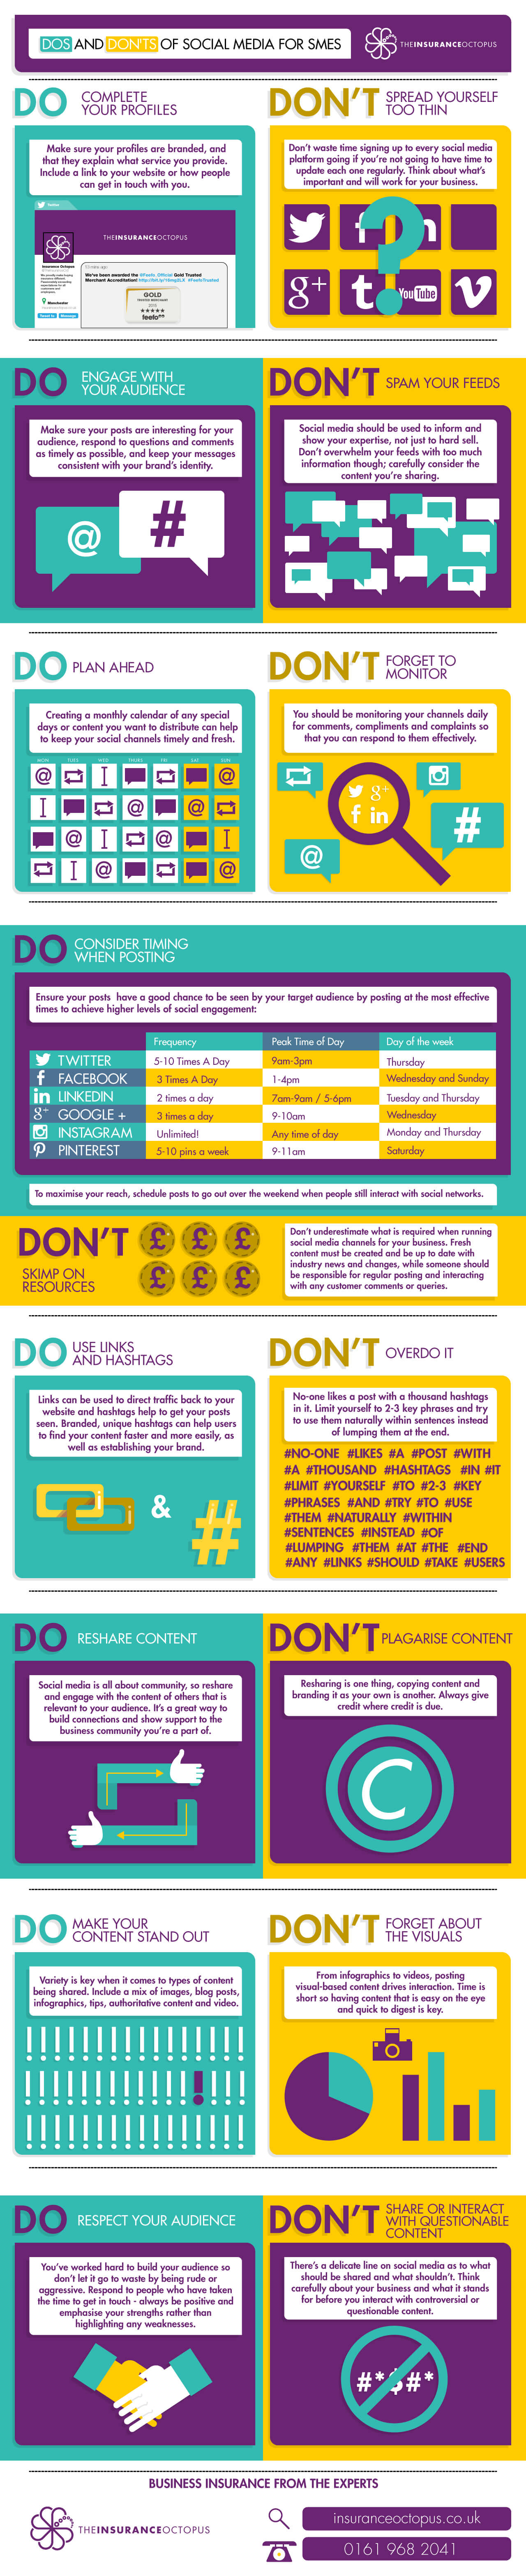 The Dos and Don'ts of Social Media for SMEs